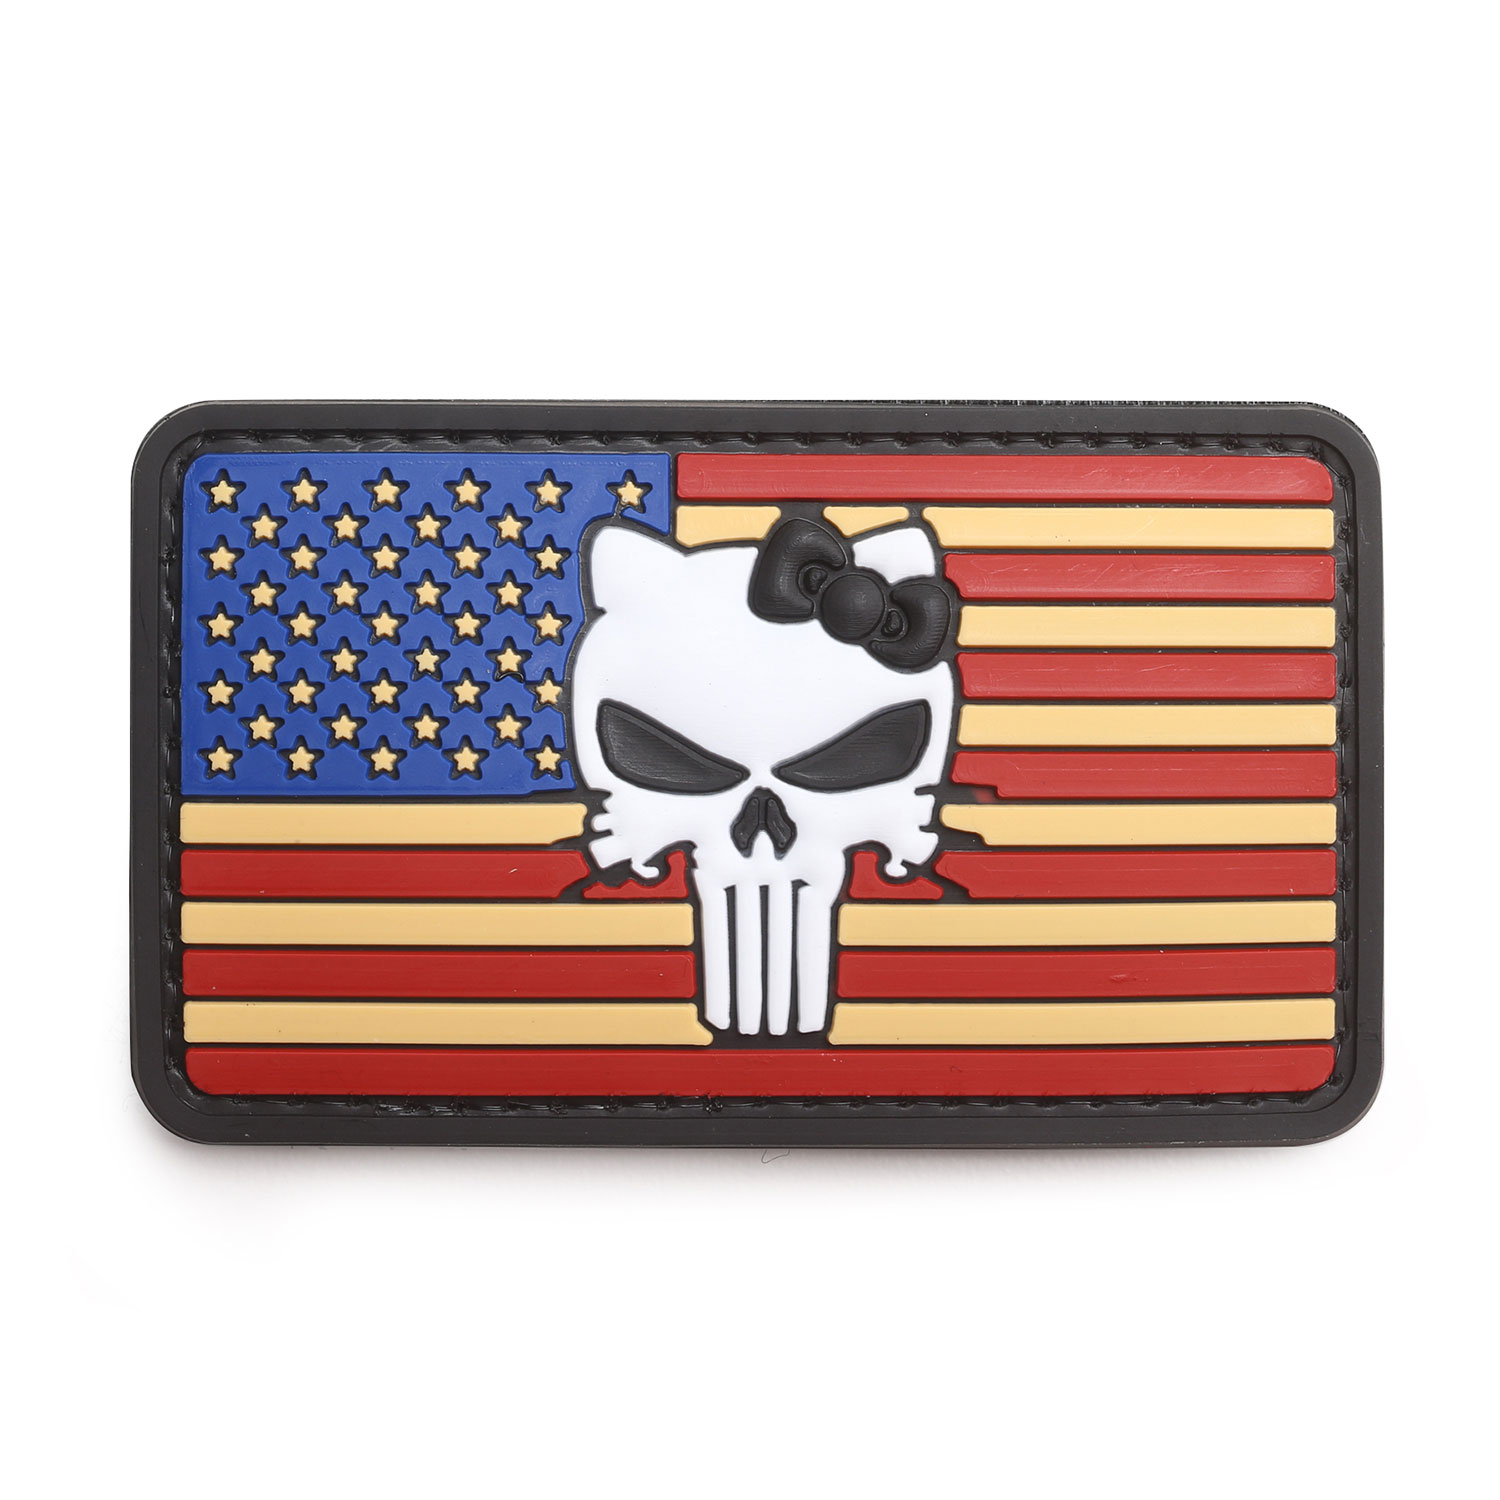 "5ive Star Gear ""Vintage Flag with Kitty"" Morale Patch"